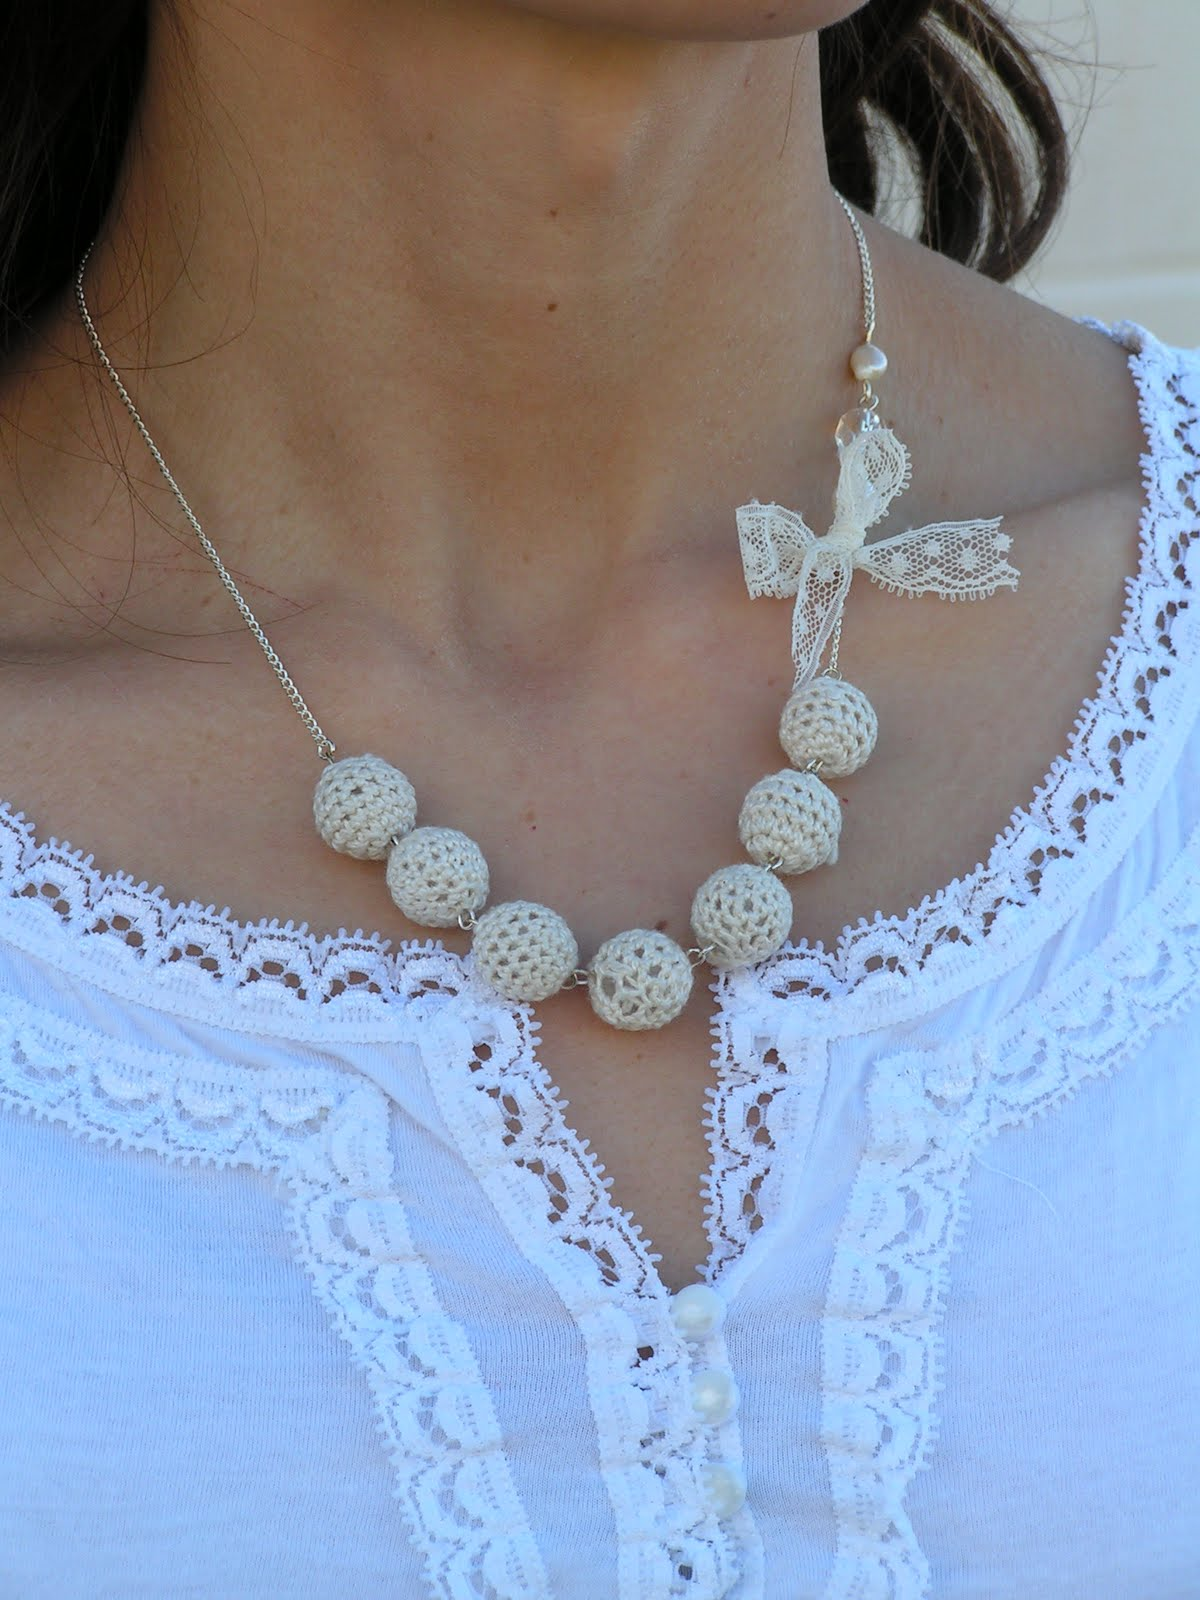 Crocheting Necklaces With Beads : Tea Rose Home: Crochet Beads Necklace